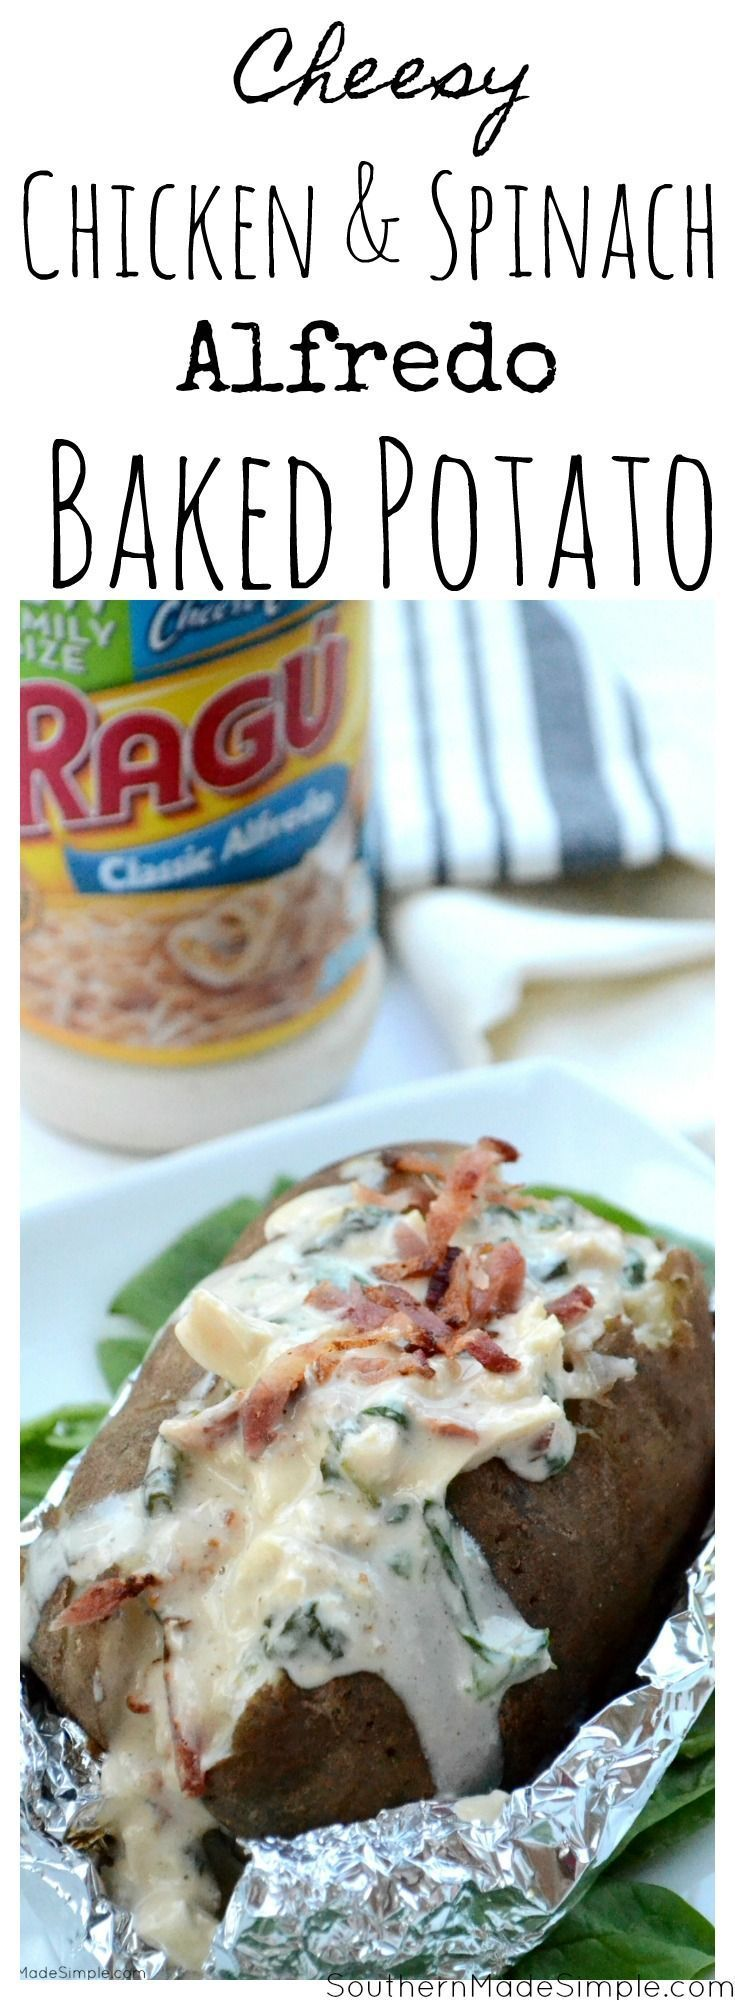 There's nothing better than a baked potato loaded with delicious cheesy goodness, and these Cheesy Chicken & Spinach Alfredo Baked Potatoes are overflowing with the the creamiest Alfredo sauce made by Ragu that will make you want to go back for seconds! #ad